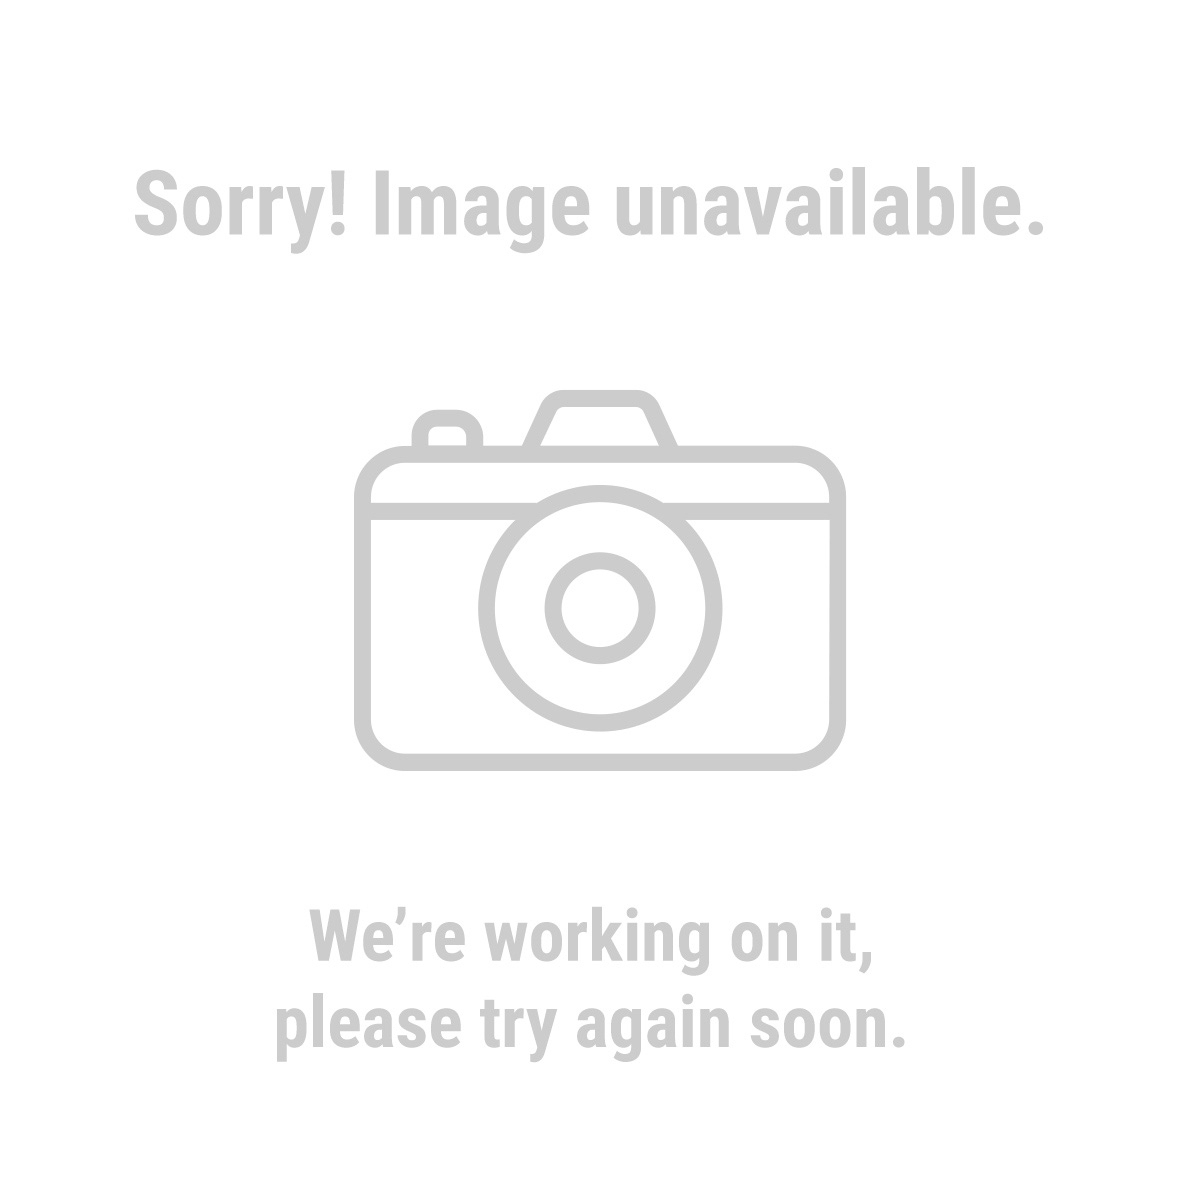 Chicago Electric 98067 10mm x 5m Heat Shrink Tubing